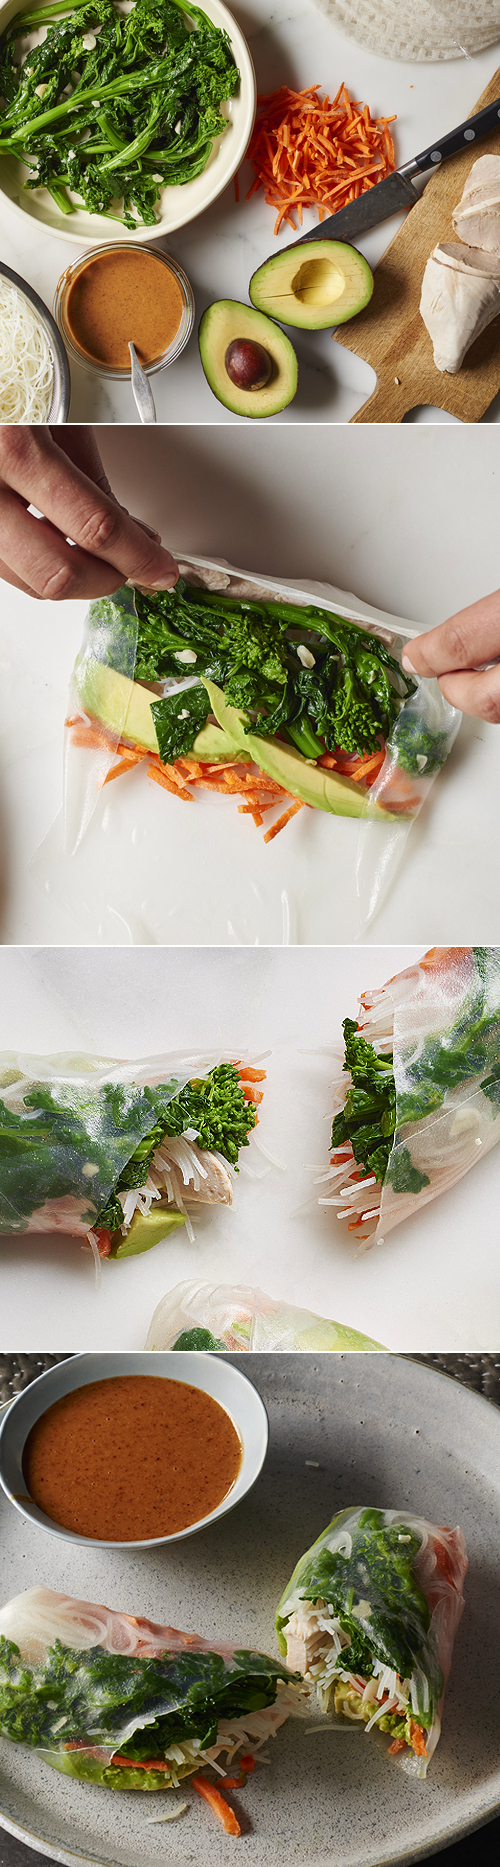 Andy Boy Broccoli Rabe Salad Rolls